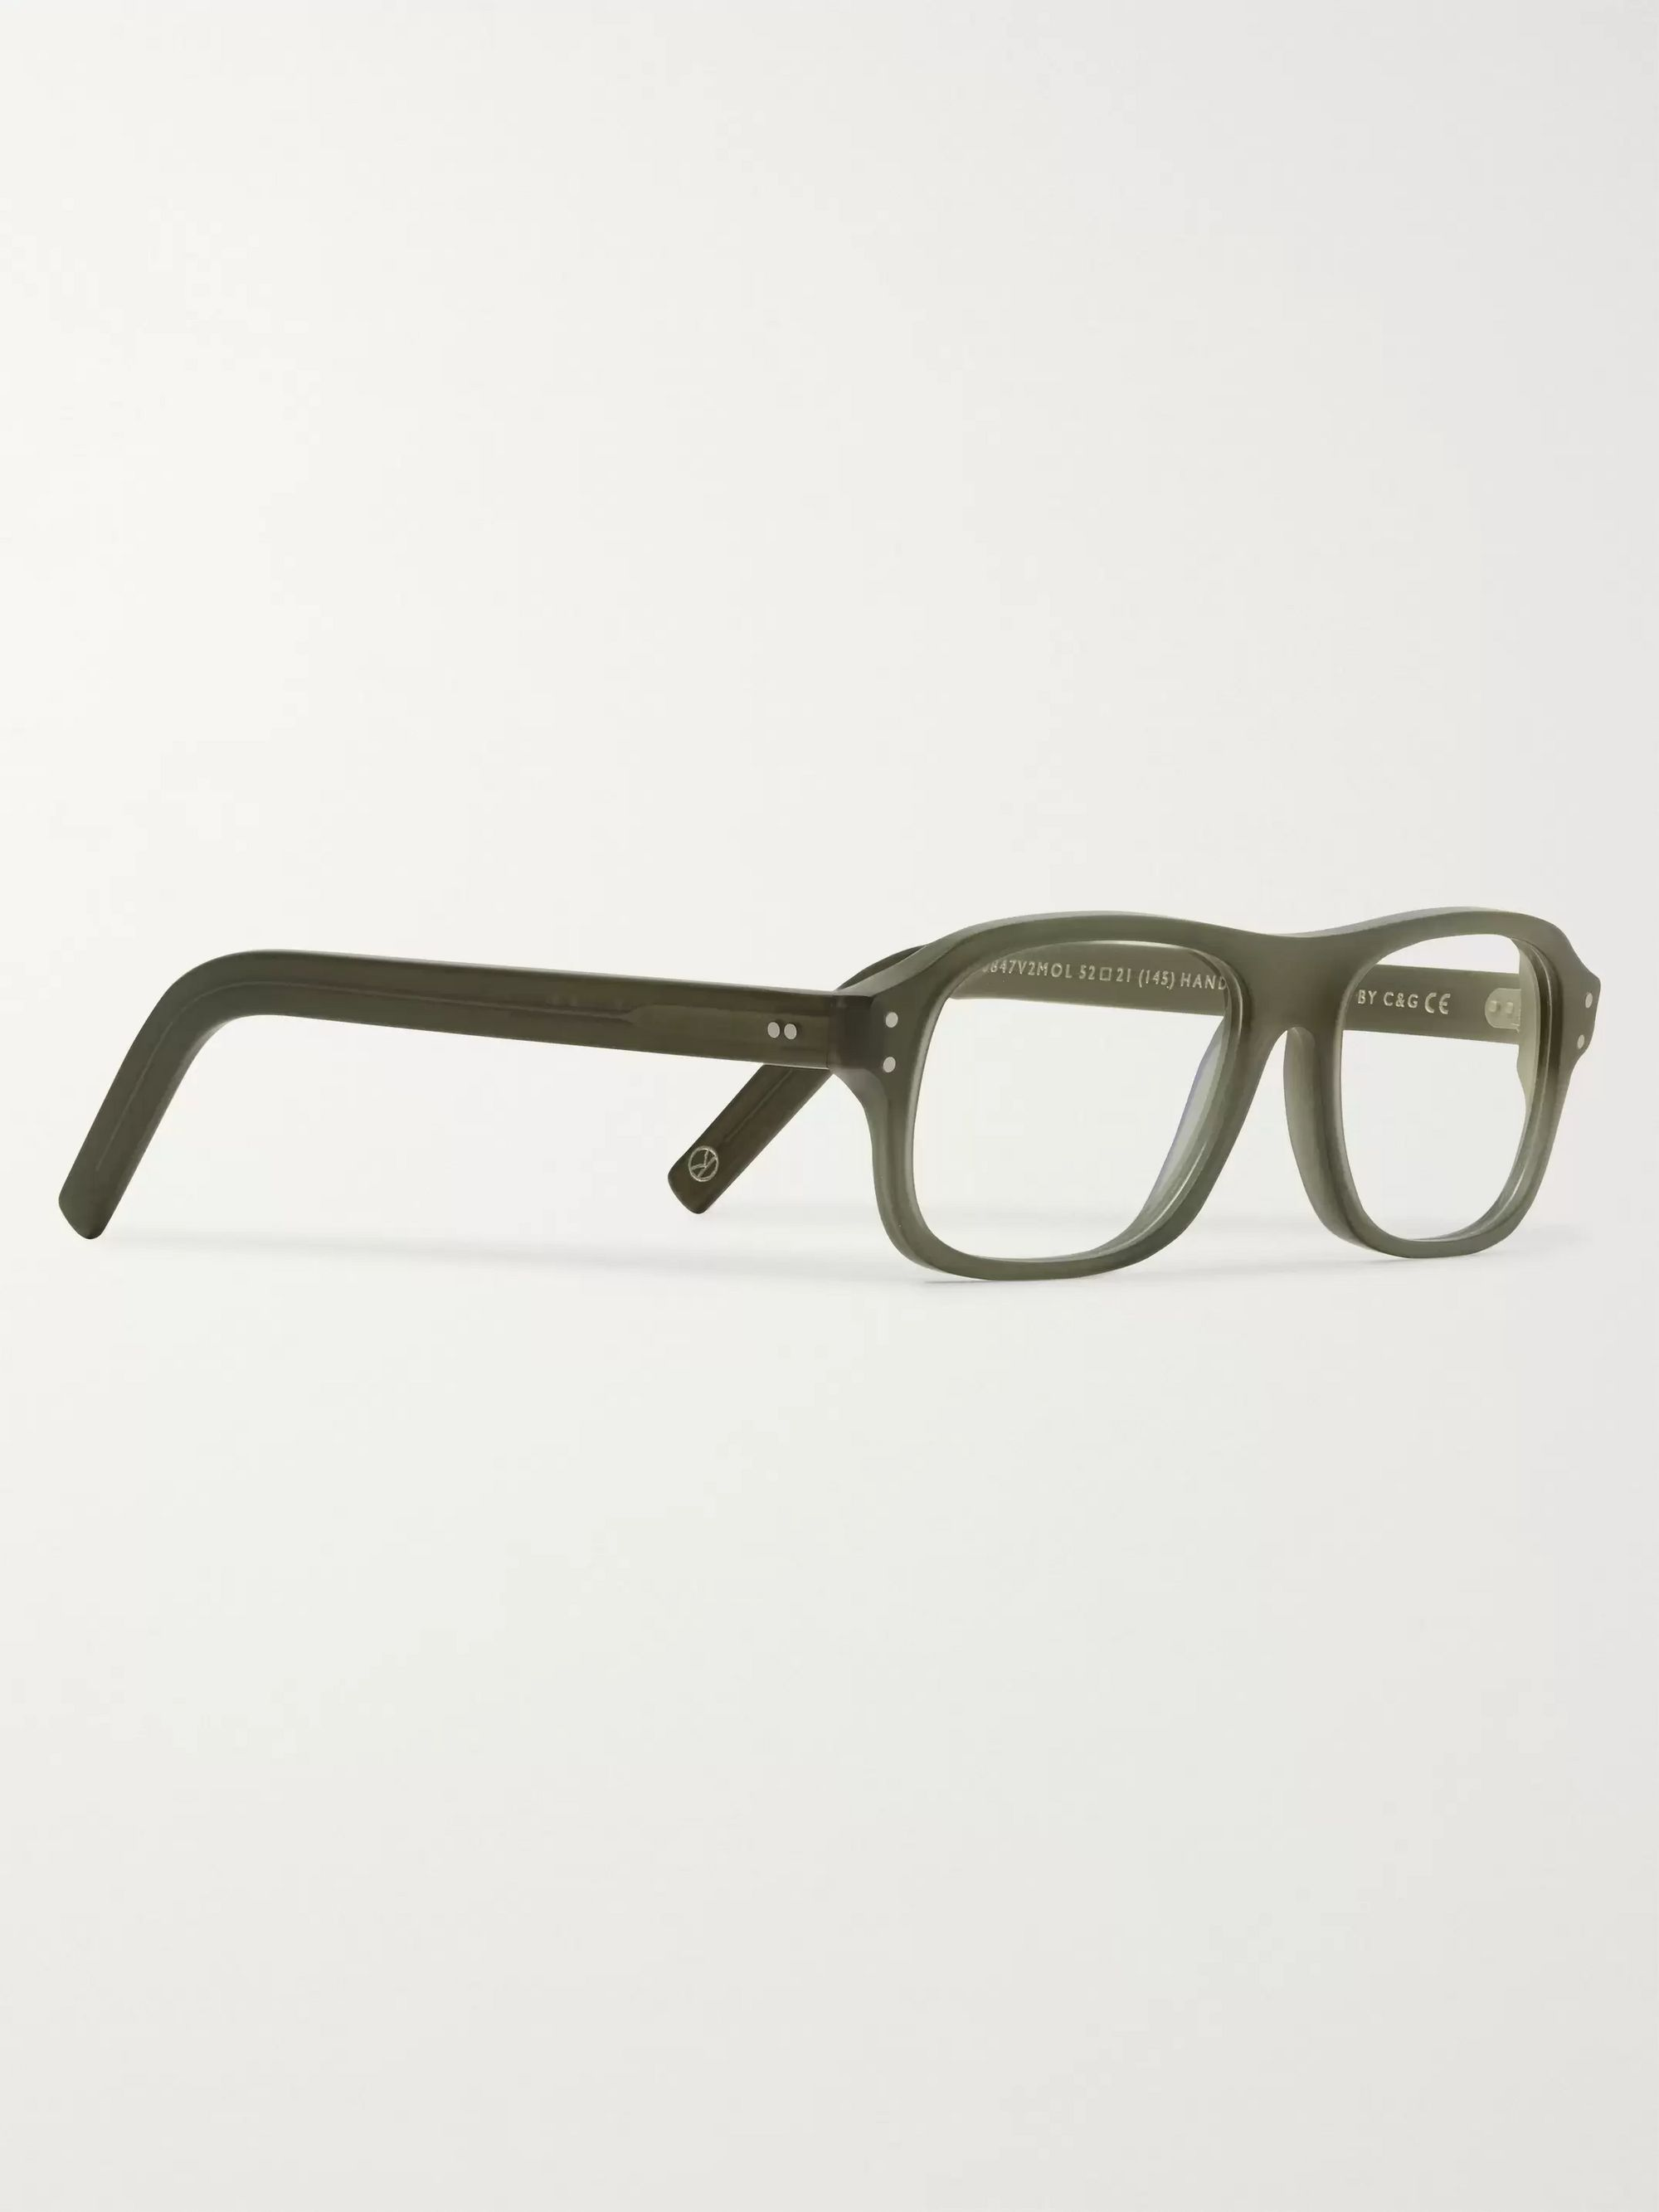 Kingsman + Cutler and Gross Eggsy's Rectangular-Frame Acetate Optical Glasses